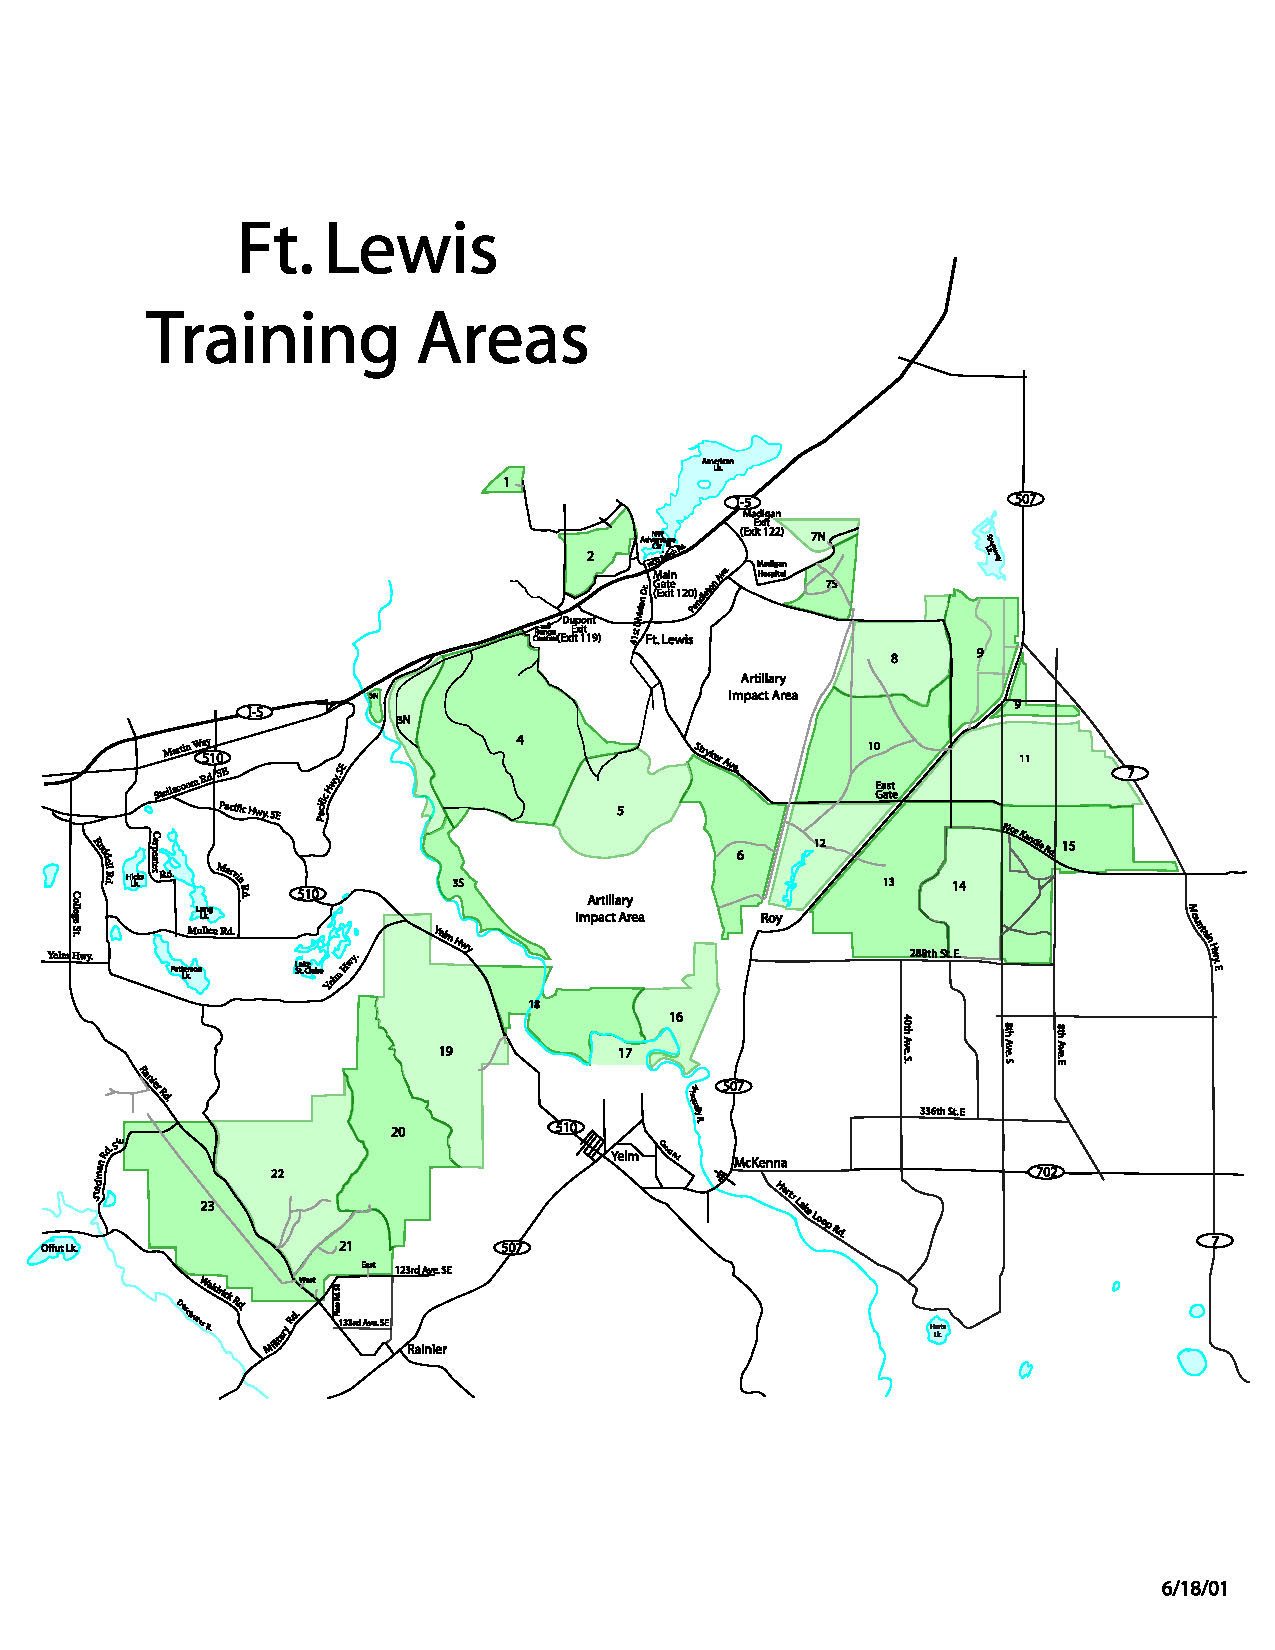 ft_lewis_training_areas